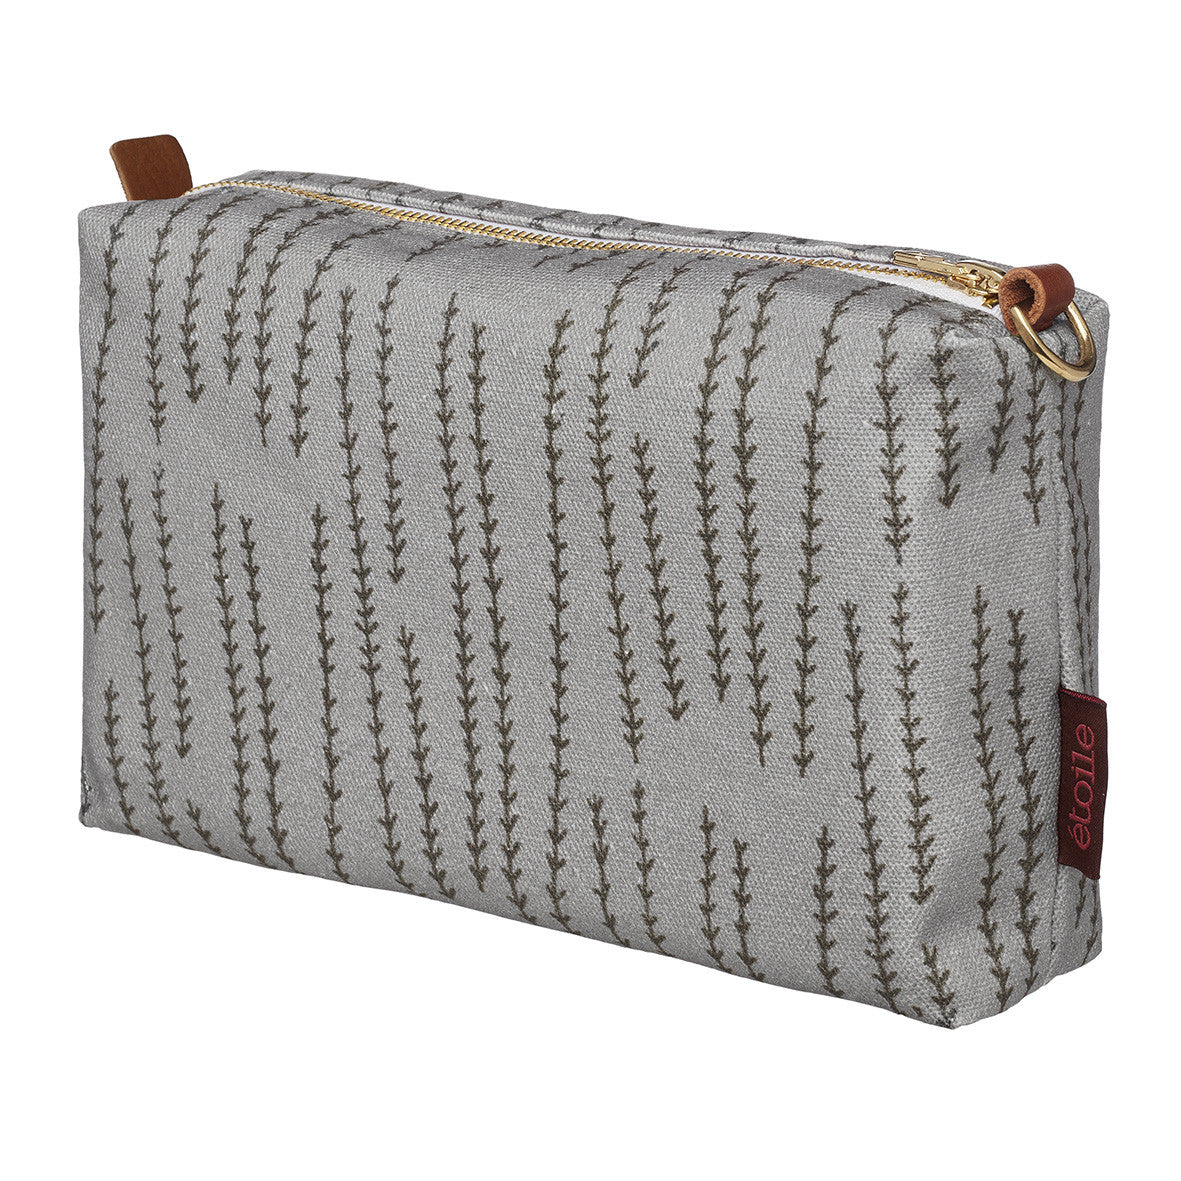 Graphic Rosemary Sprig Pattern Printed Cotton Canvas Wash Bag in Dove Grey with Stone Grey